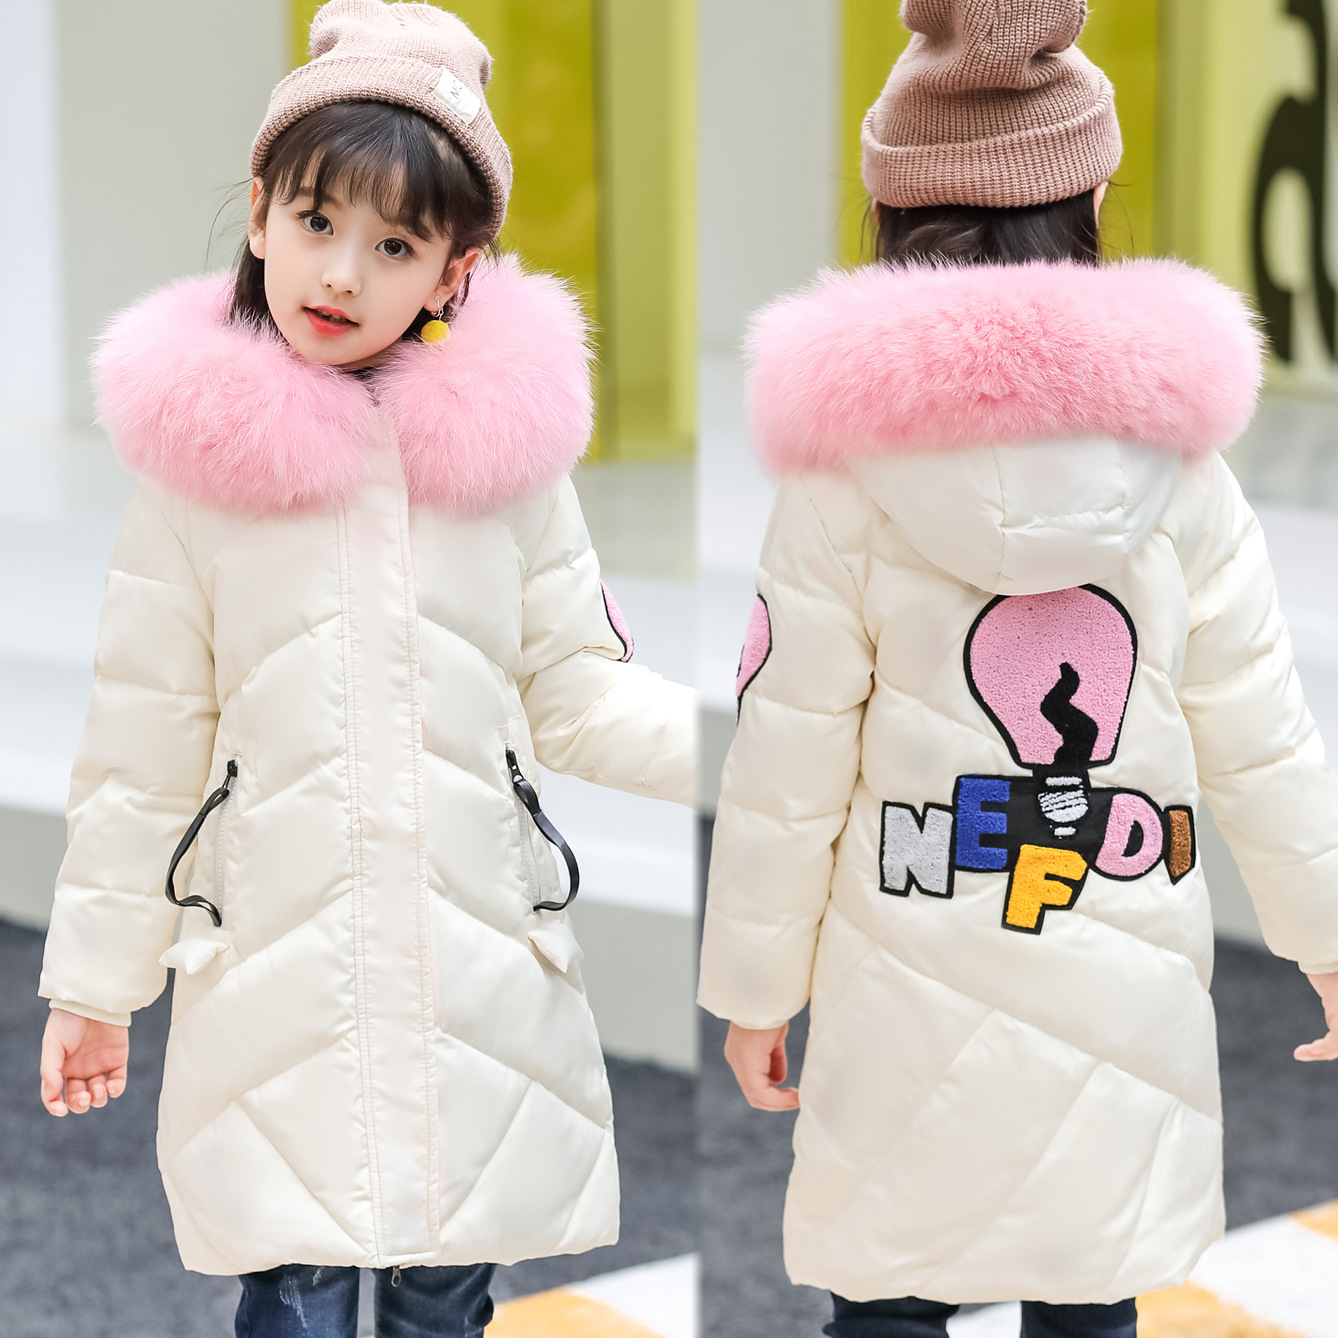 2017 New Winter Russia Children Cartoon Long Duck Down & Parkas Teenage Girls Down Jackets & Coats Fur Collar Outwear -30 Degree duck down jacket for boys 2017 russia winter warm thick down parkas children casual fur hooded jackets coats 30 degrees